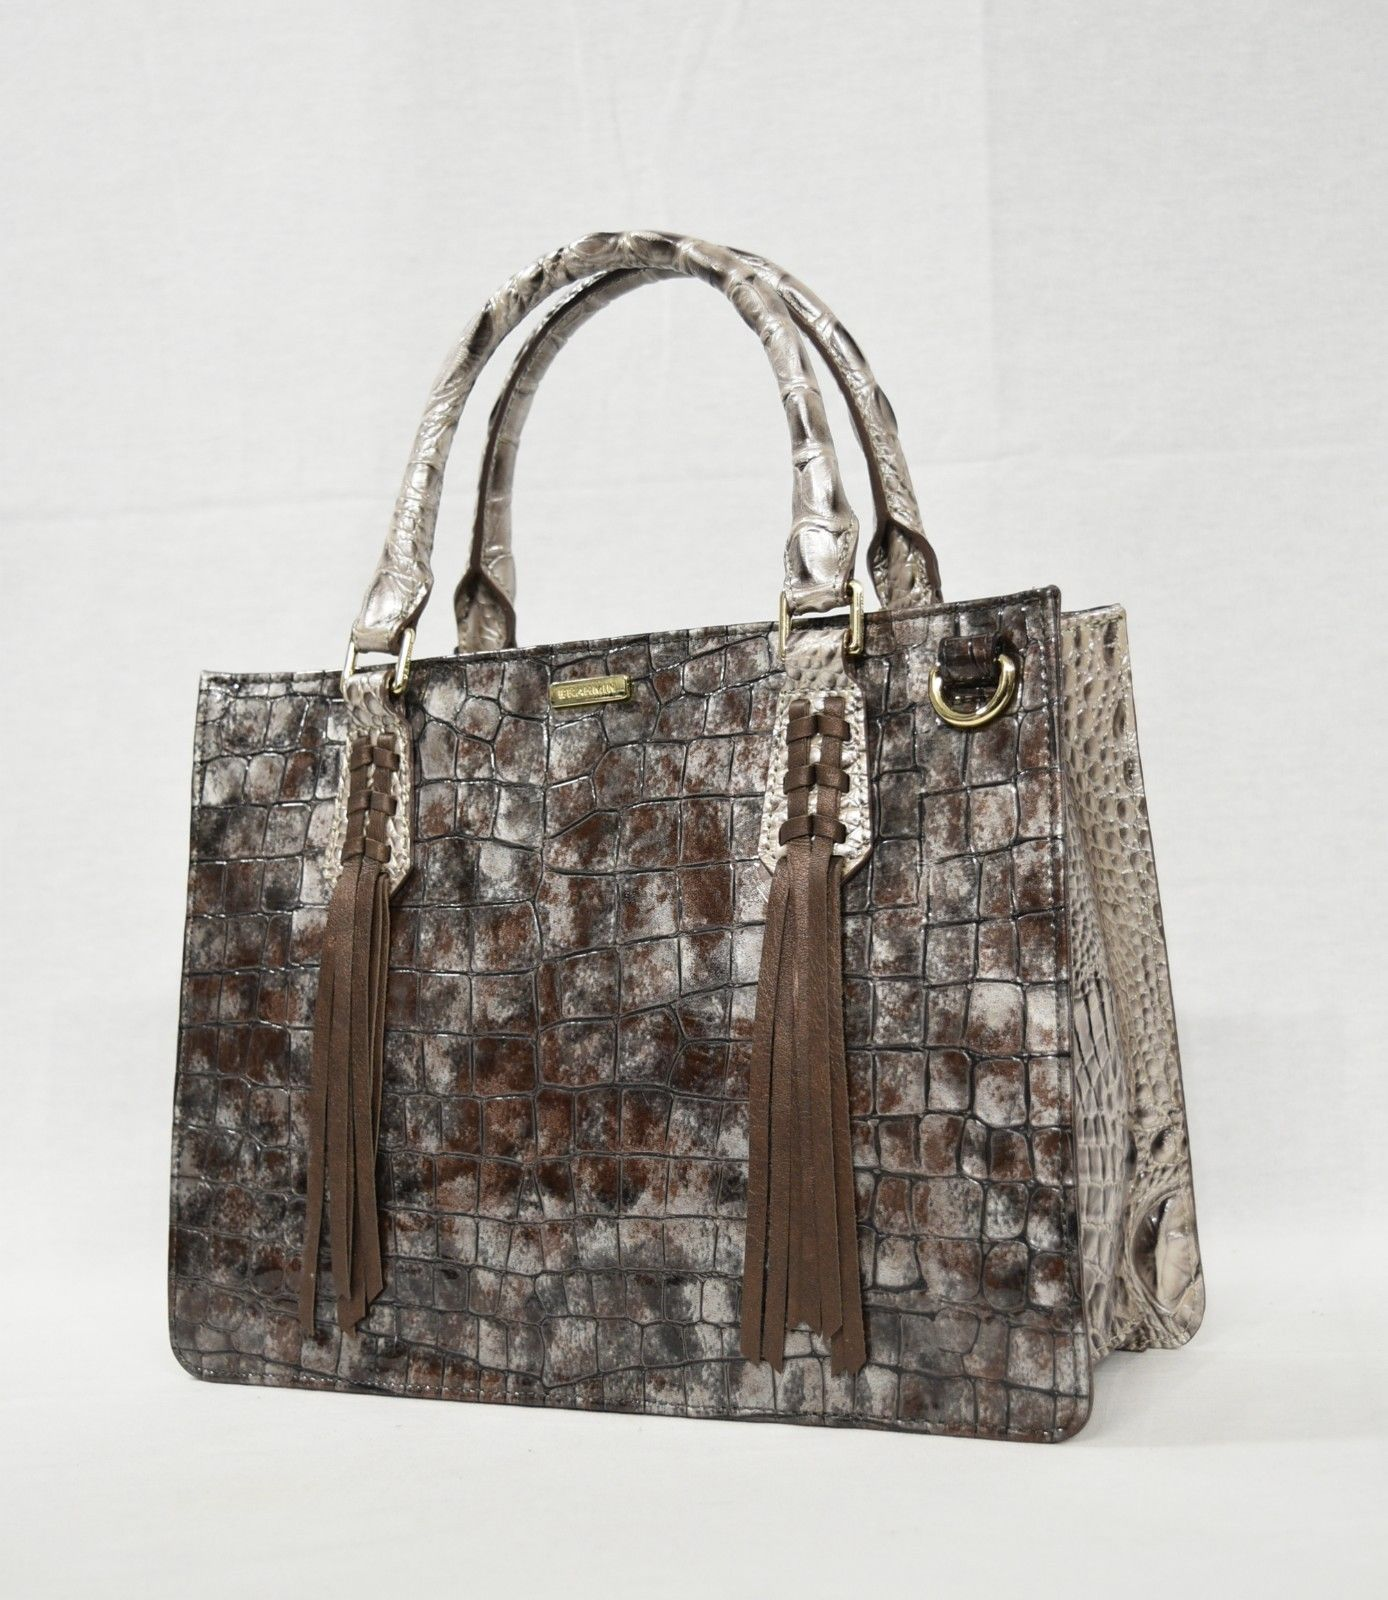 NWT Brahmin Small Camille Leather Satchel/Shoulder Bag in Brown Charente